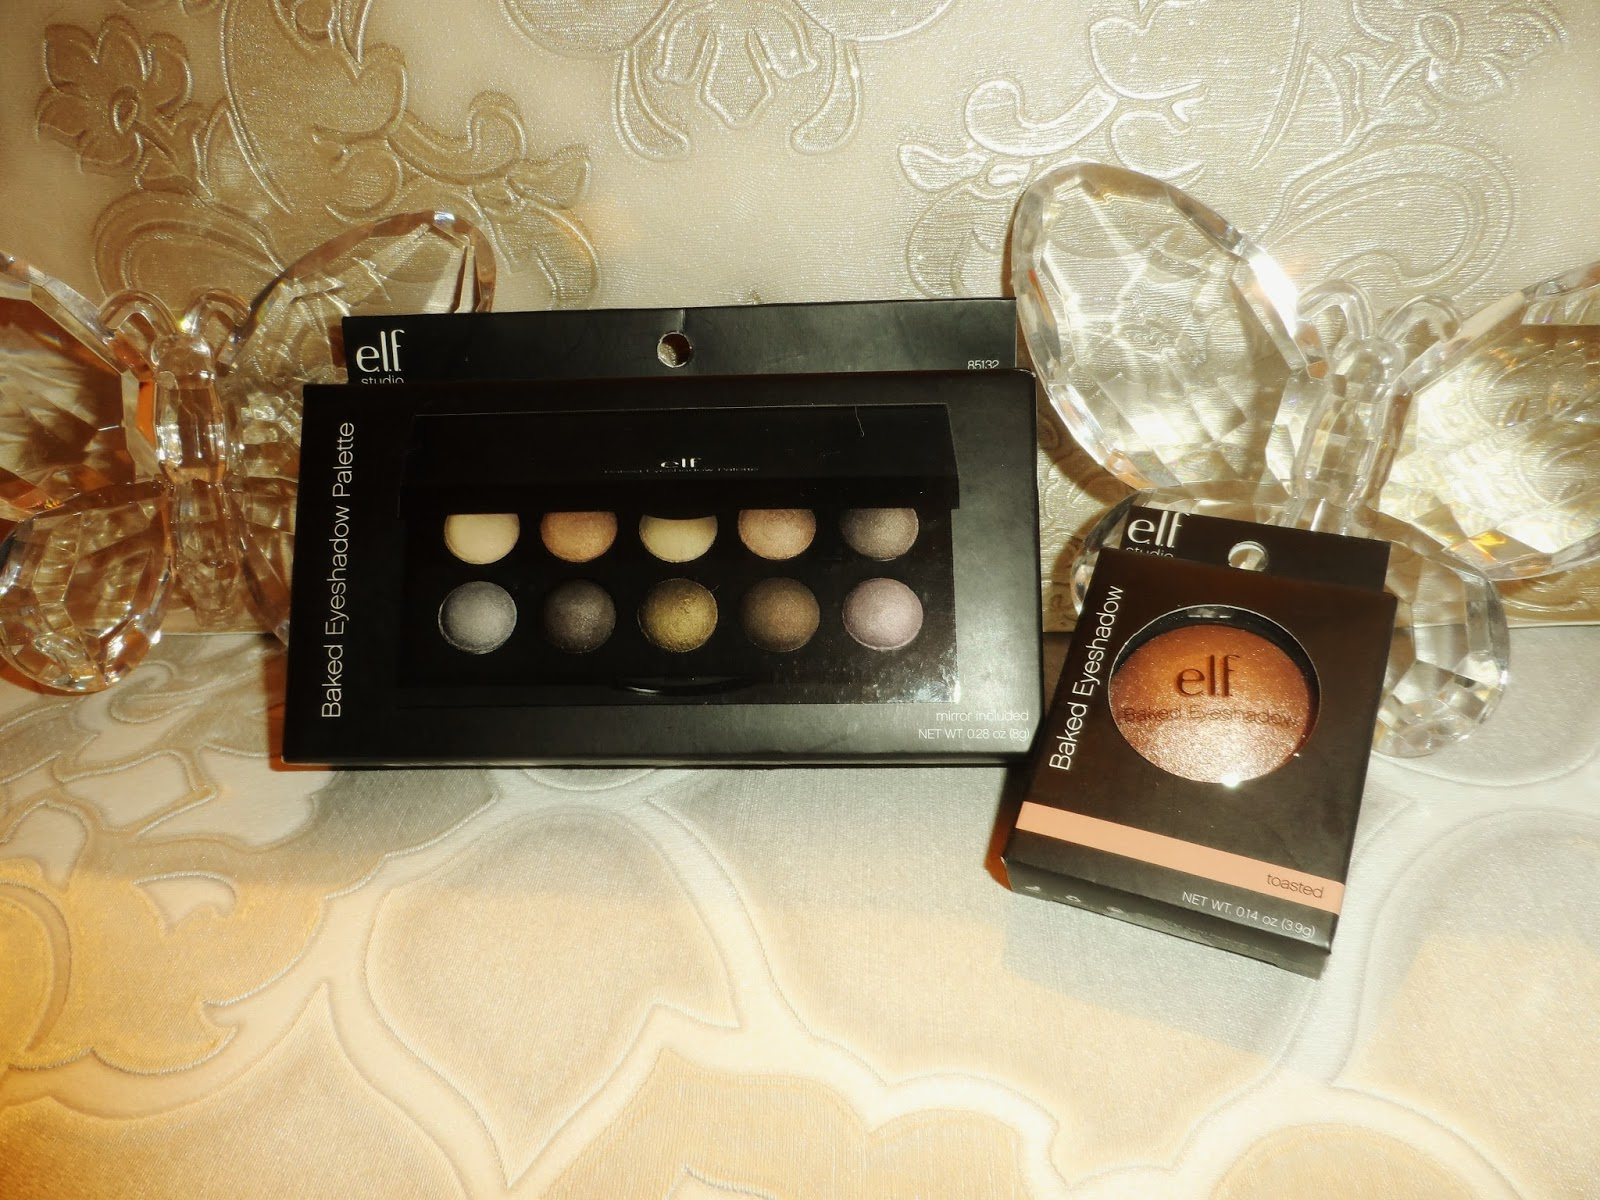 ELF baked eyeshadow bronzed smokey eye